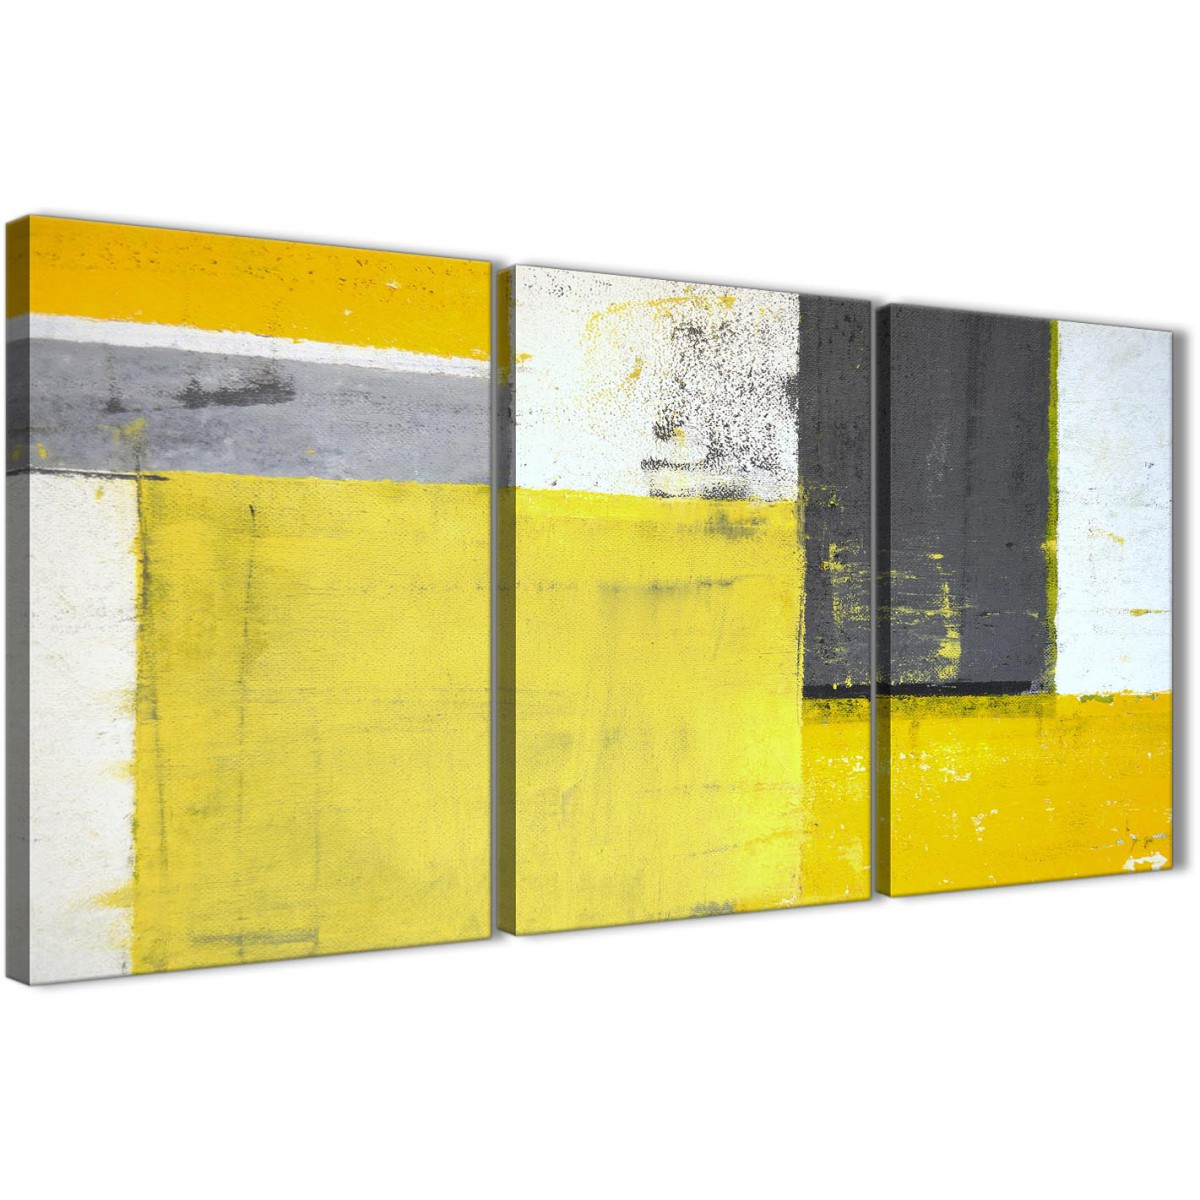 3 set 3346 125cm wide yellow grey abstract painting canvas wall art print